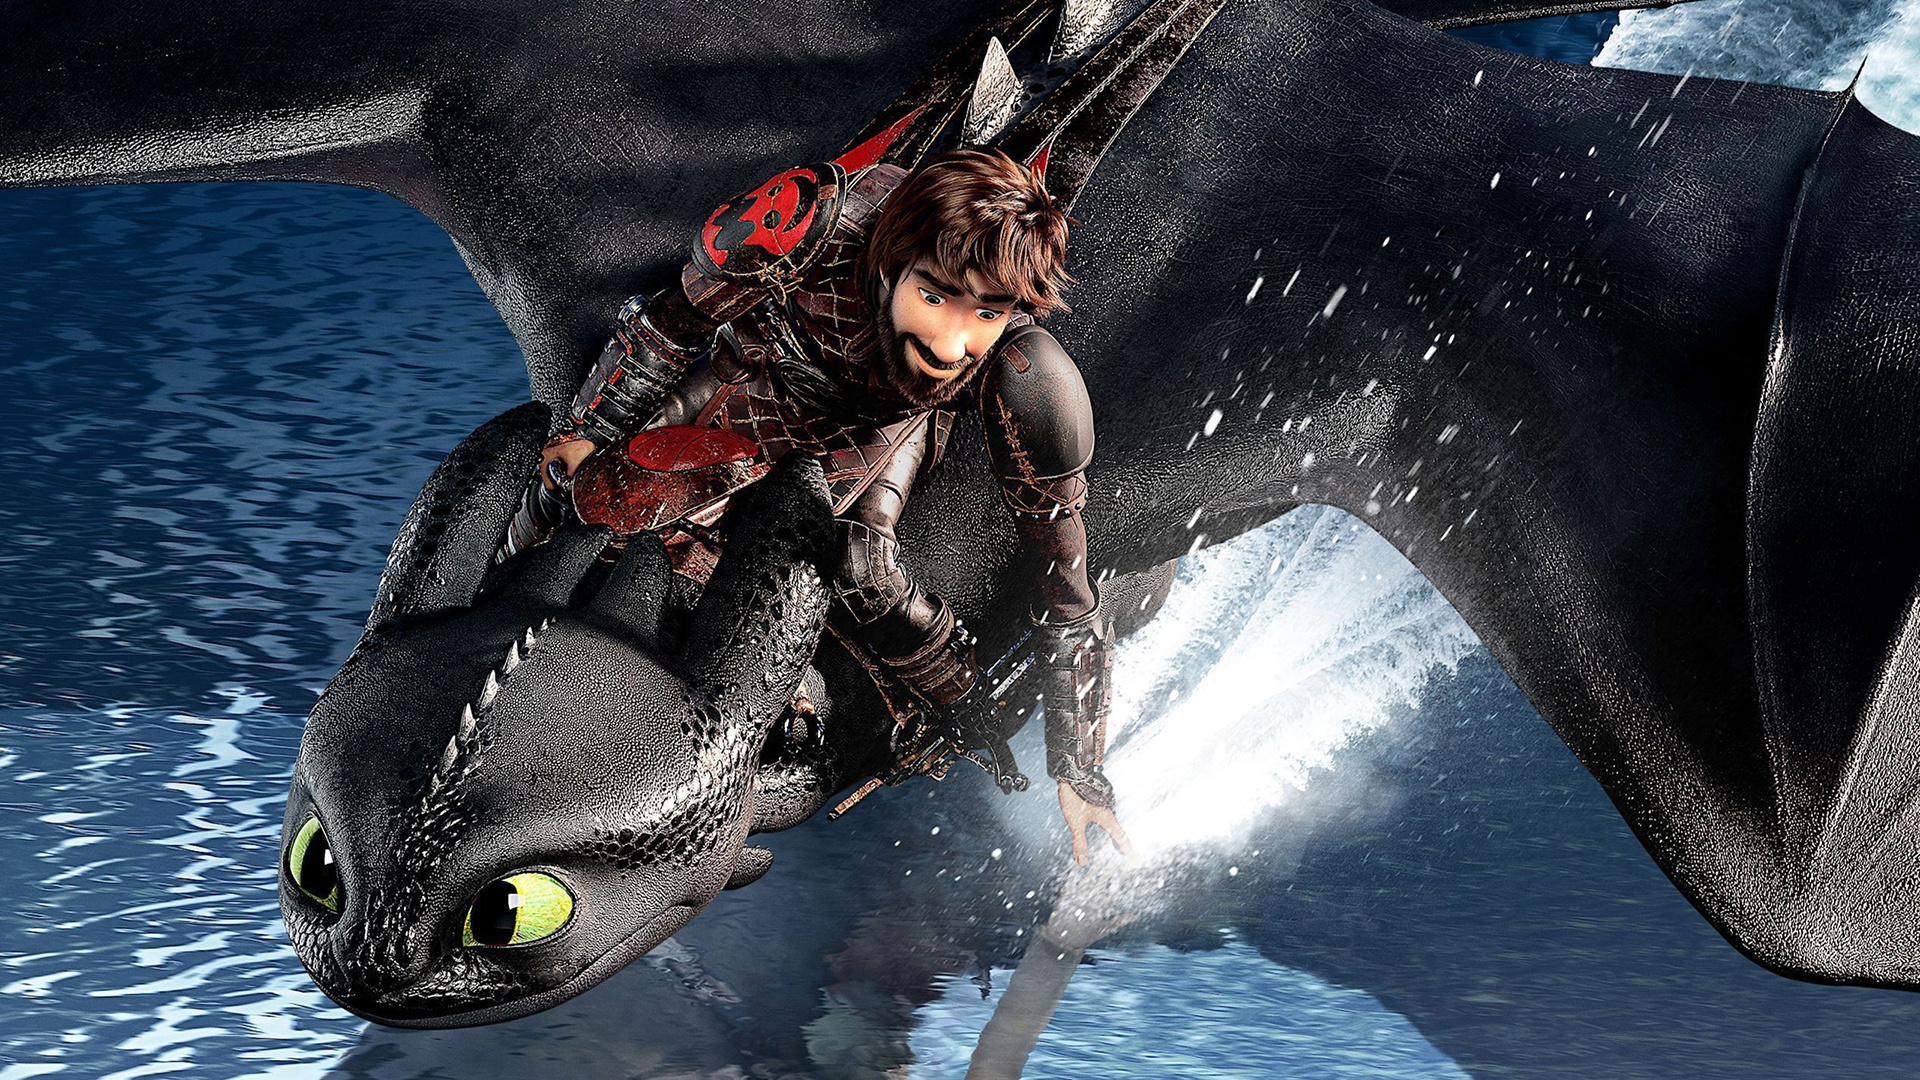 HD Wallpaper Hiccup, How to Train Your Dragon 3, Toothless